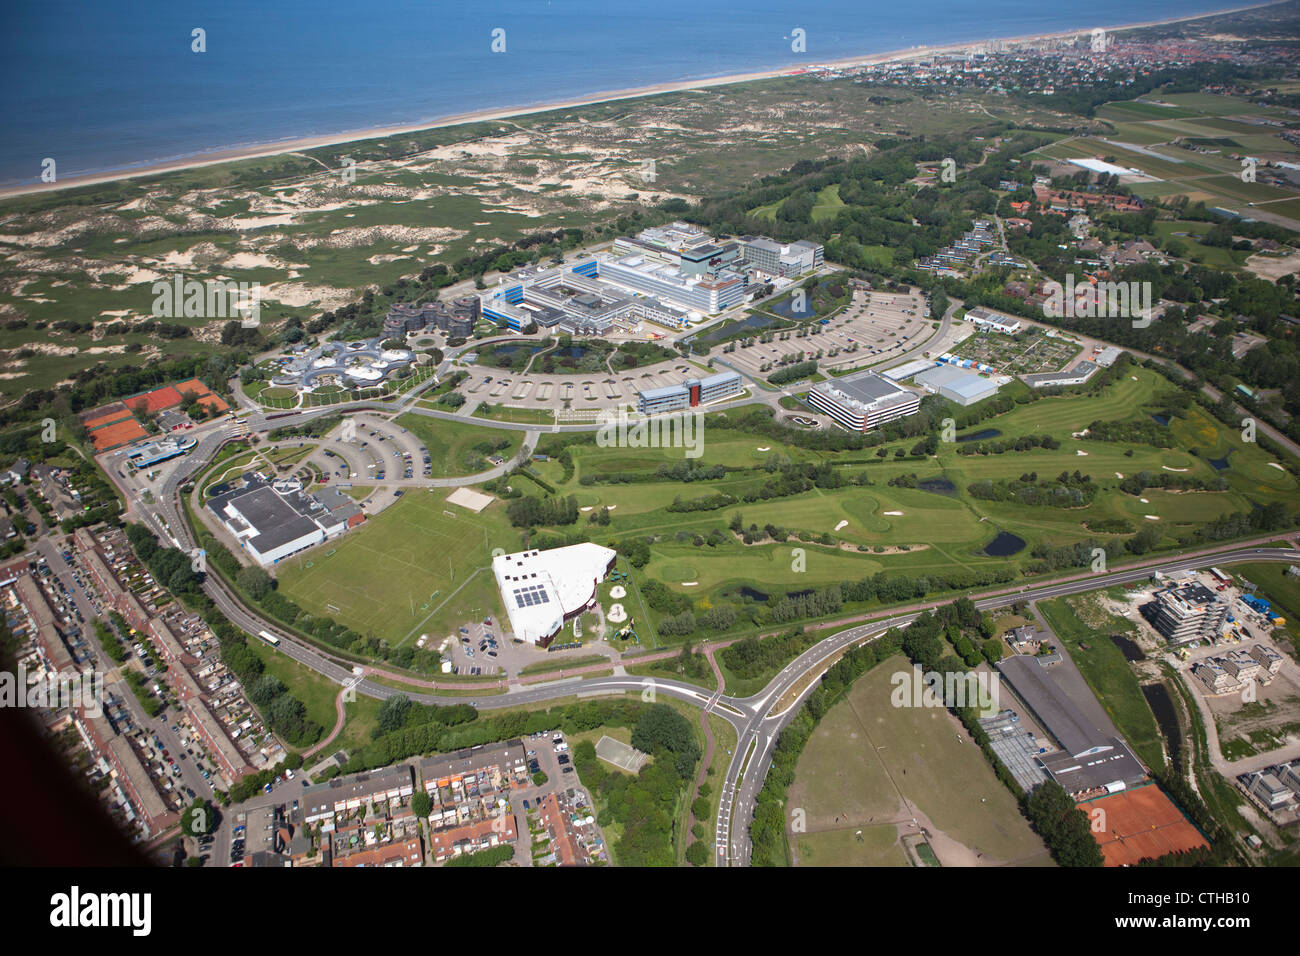 The Netherlands, Noordwijk, European Space Research and Technology Centre. Aerial. Stock Photo